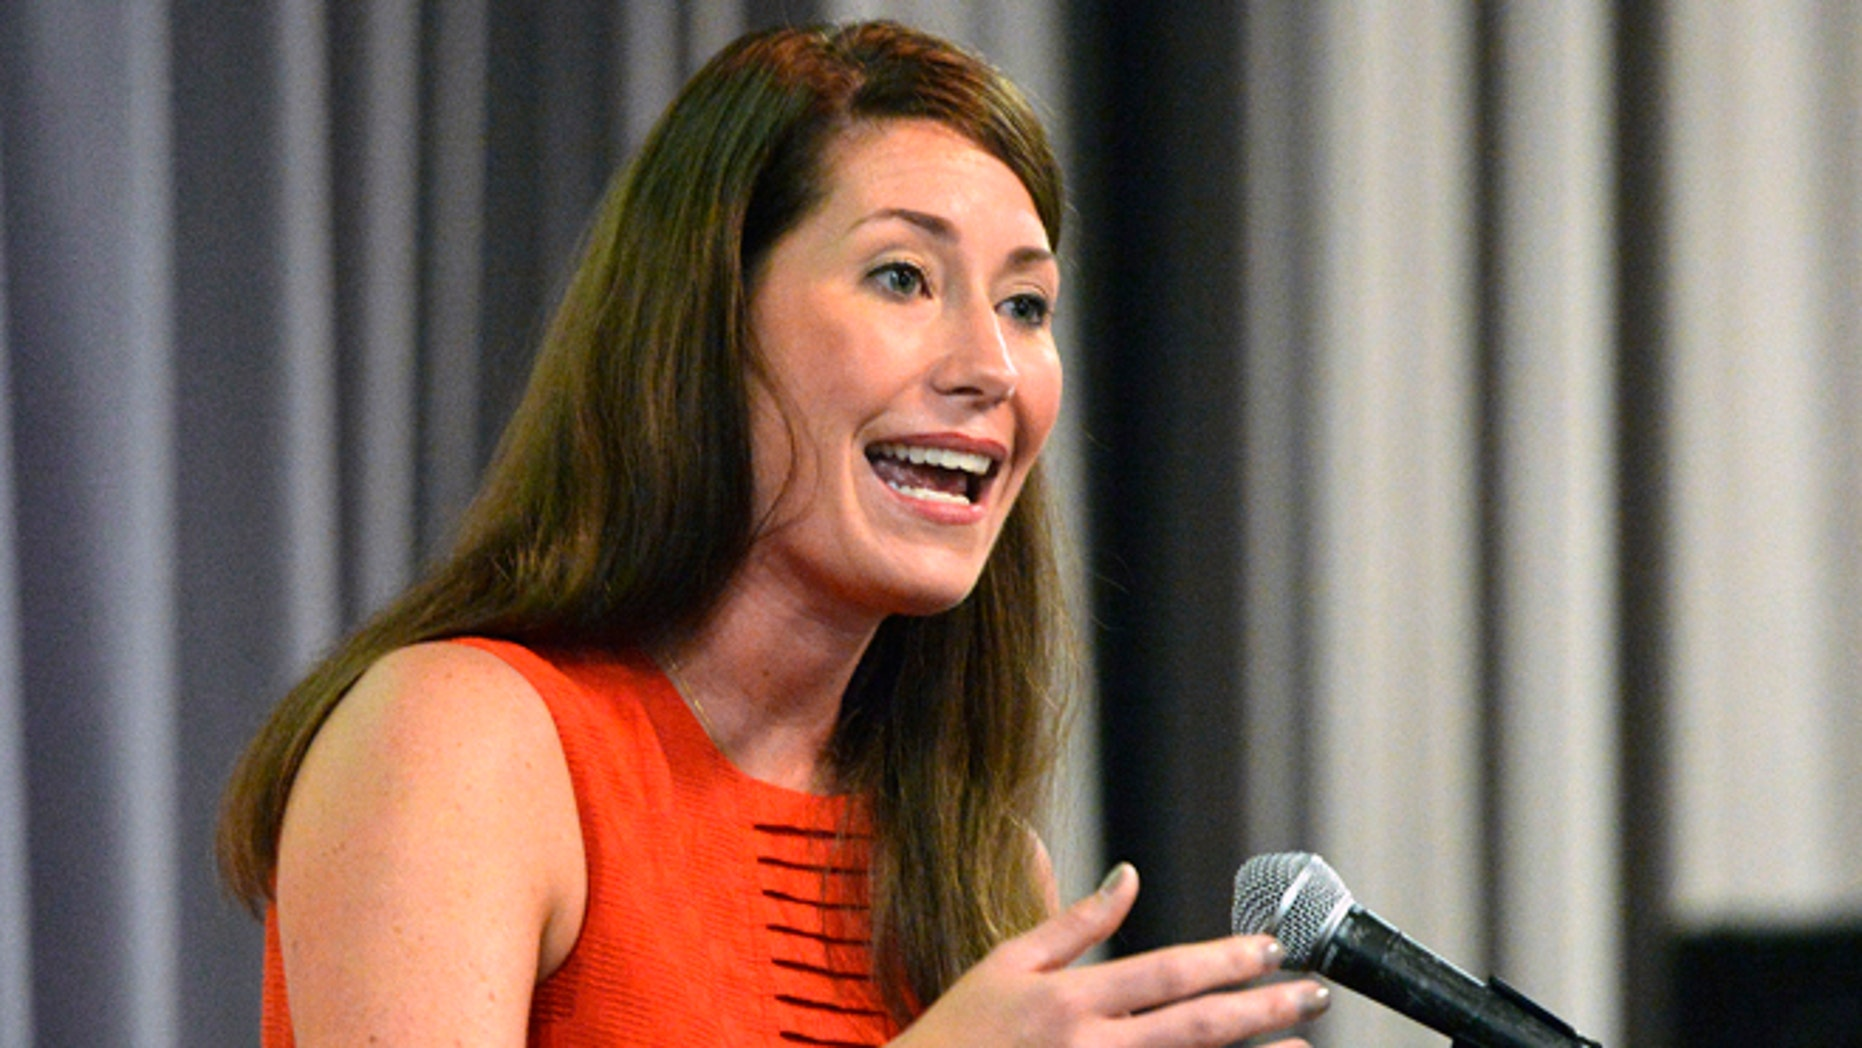 In this June 29, 2014 file photo, Kentucky democratic Senatorial candidate Alison Lundergan Grimes speaks at a rally on the University of Louisville campus in Louisville, Ky.